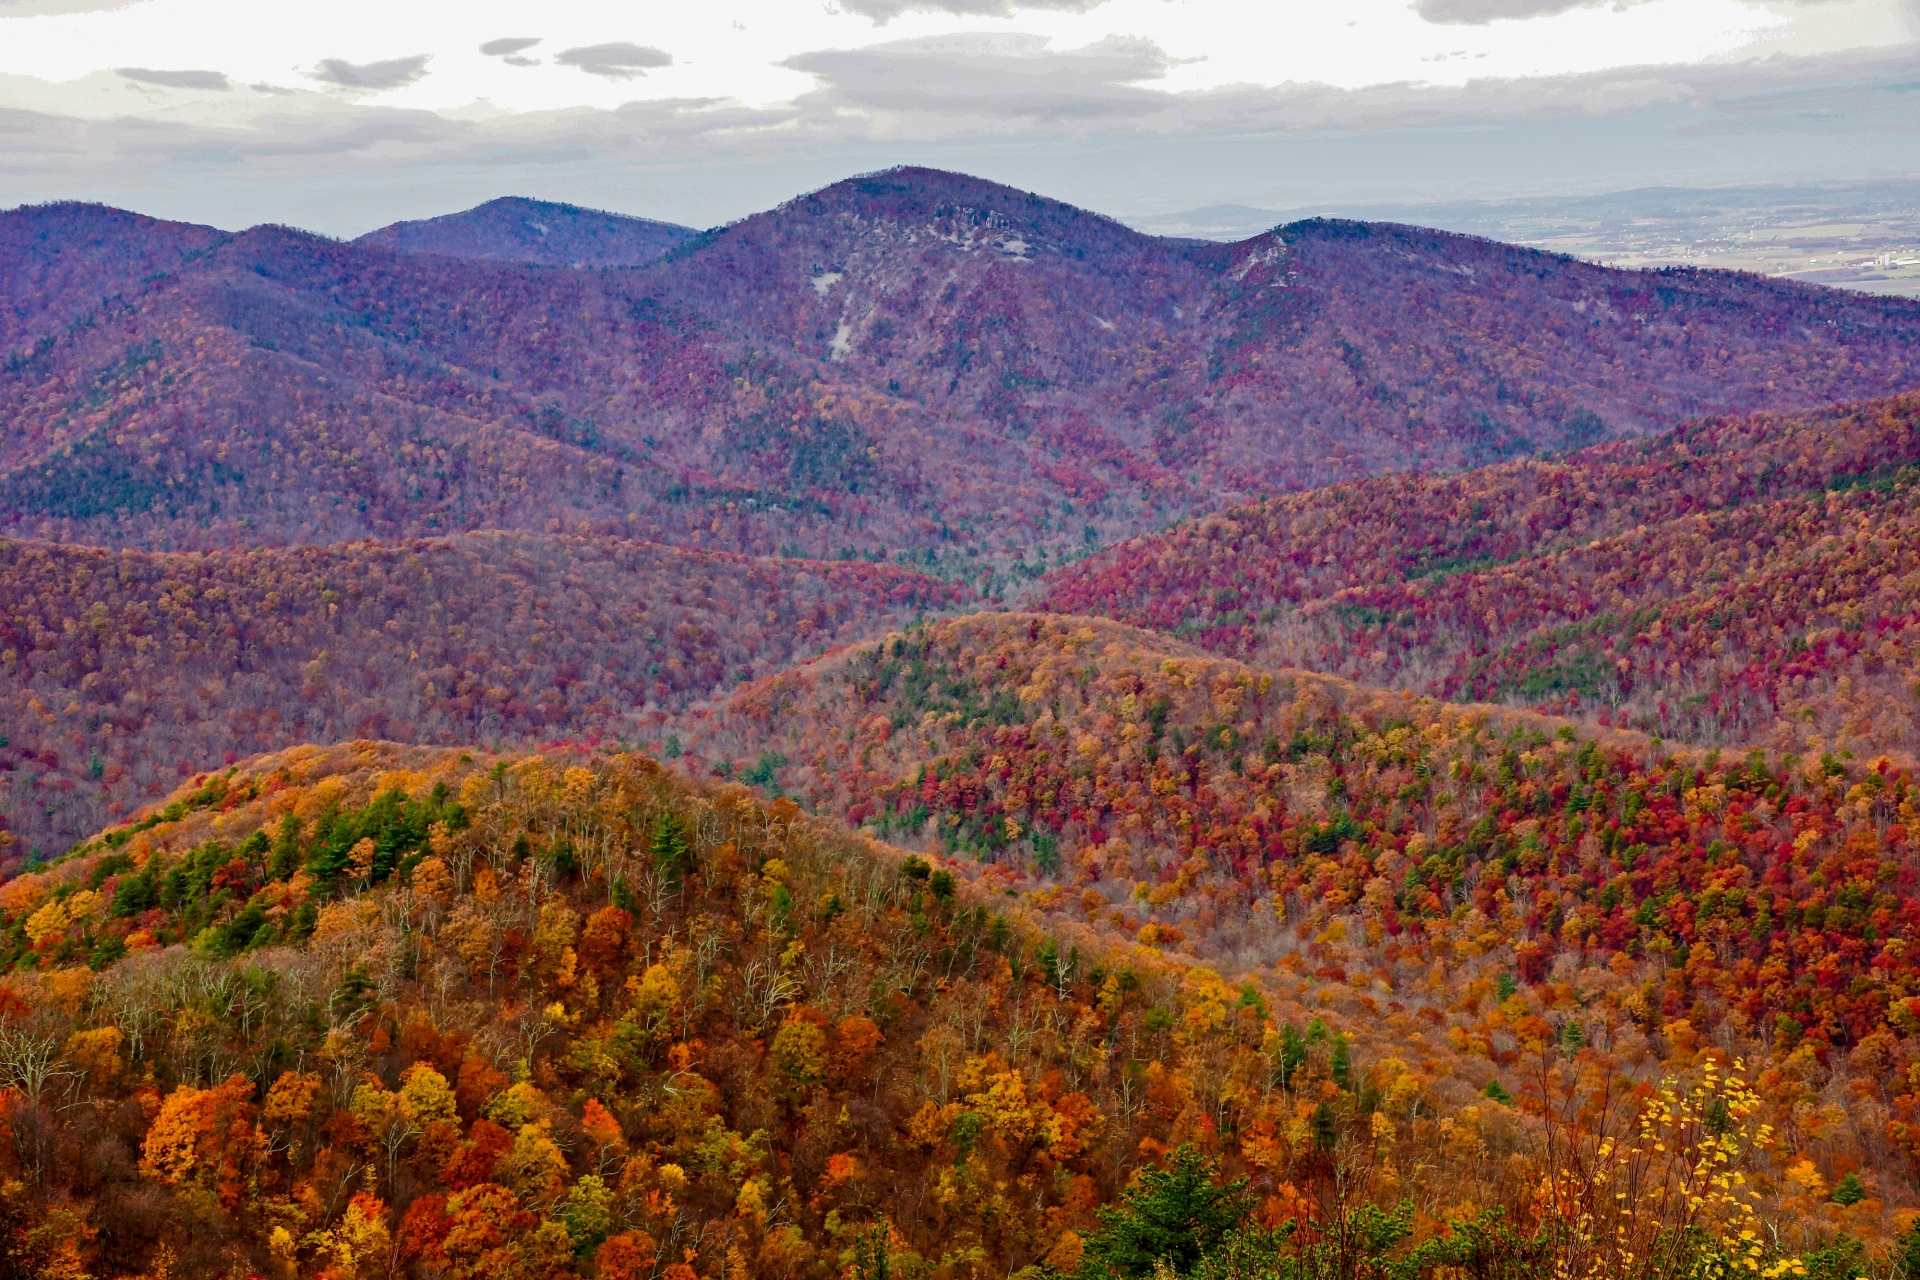 Autumn foliage along Skyline Drive